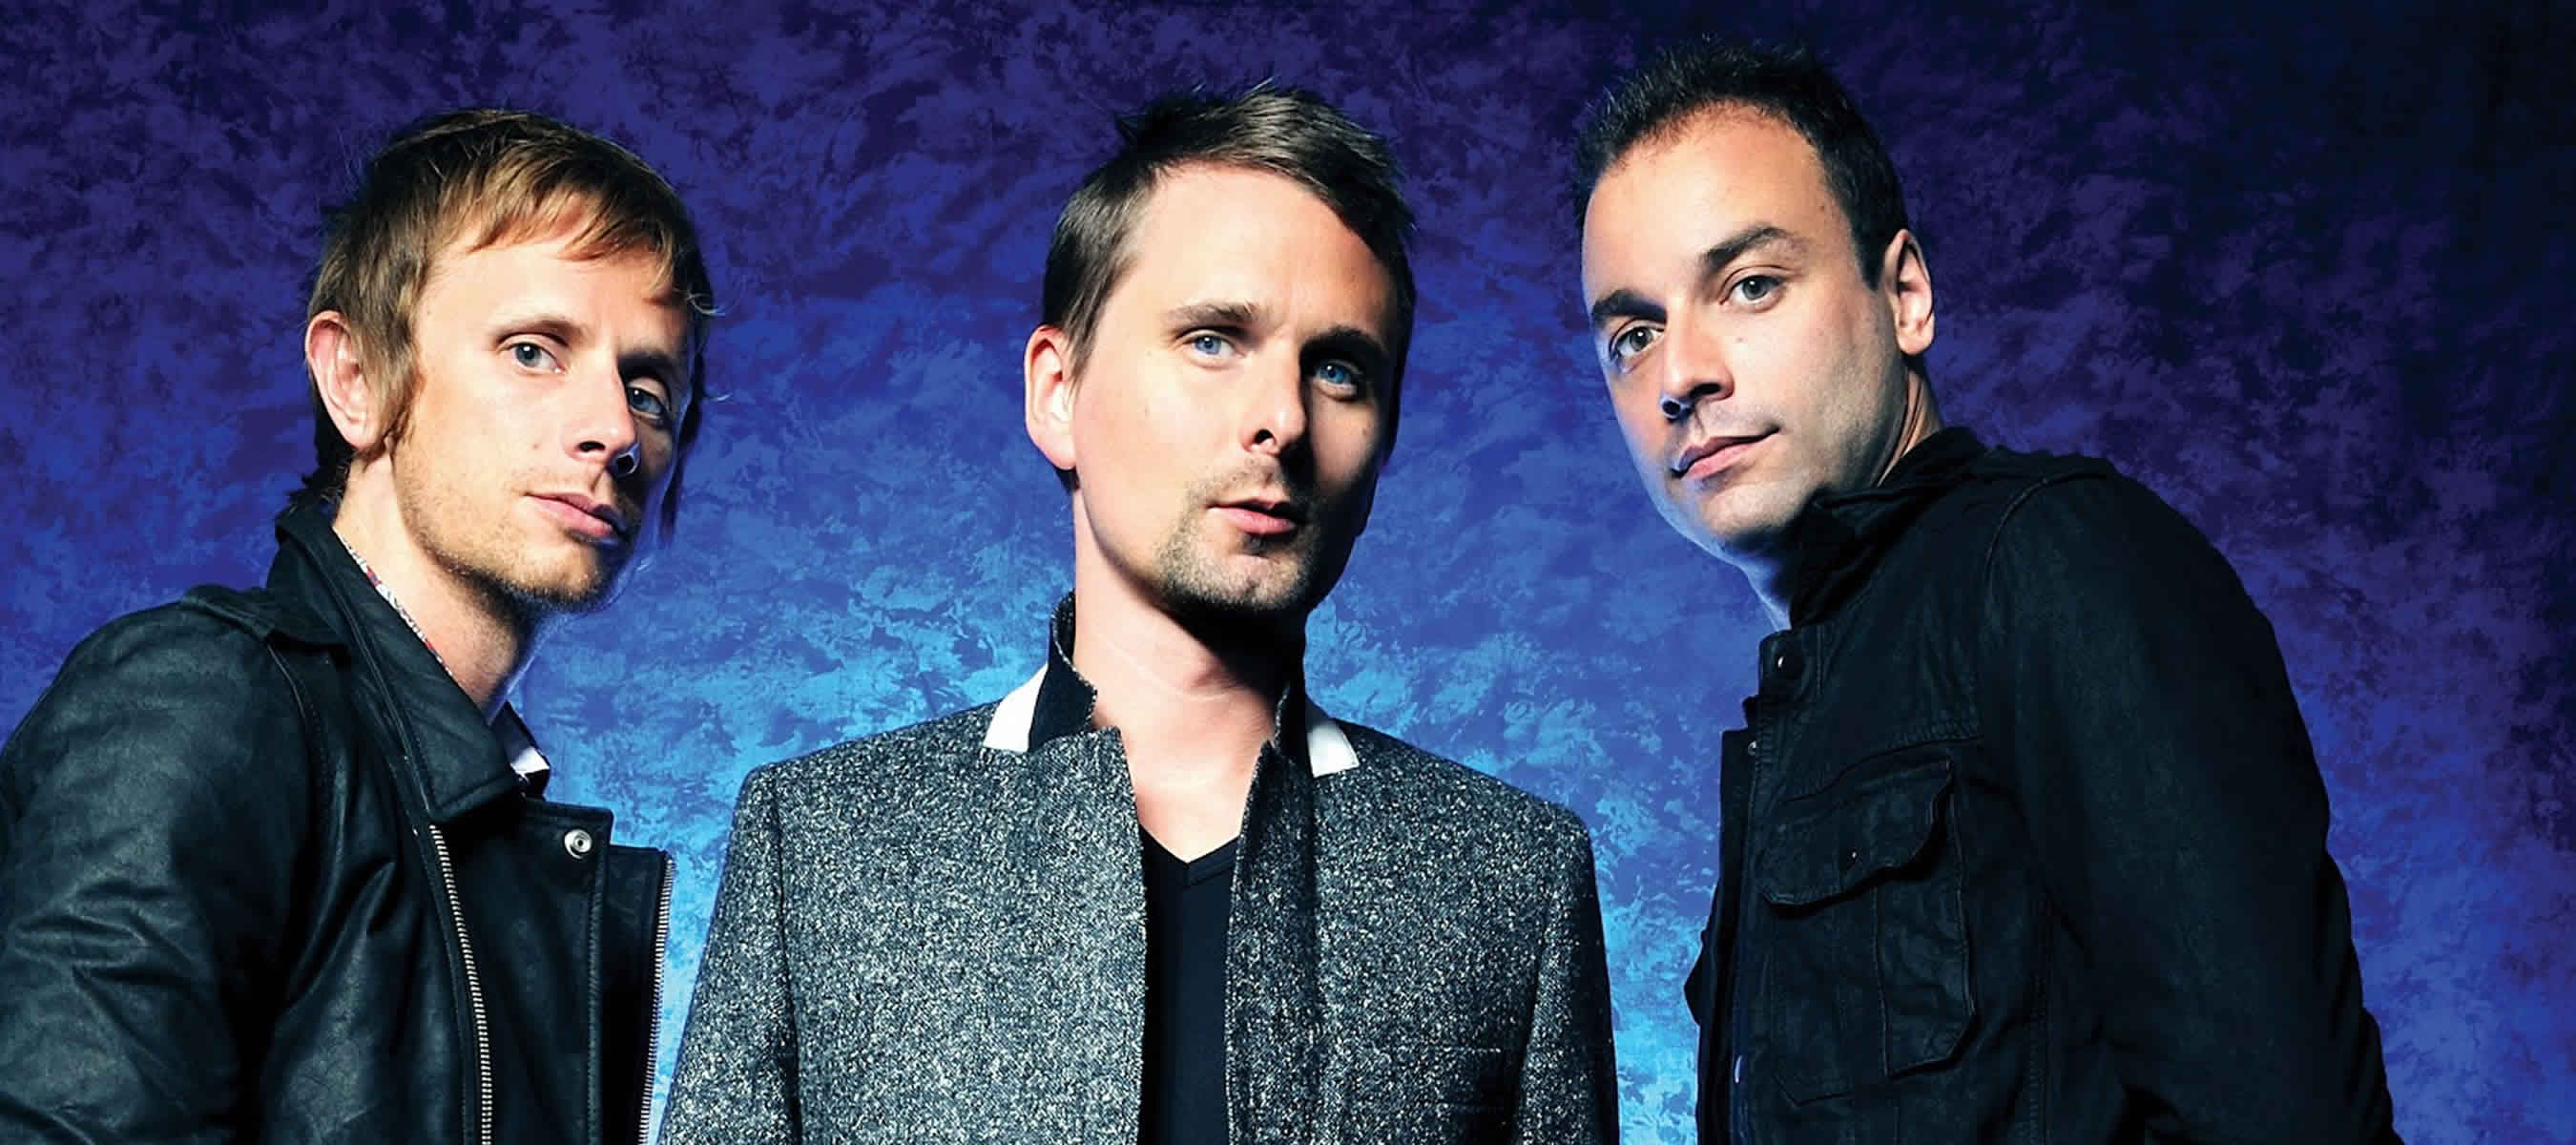 Tributo a muse - Smoking Molly